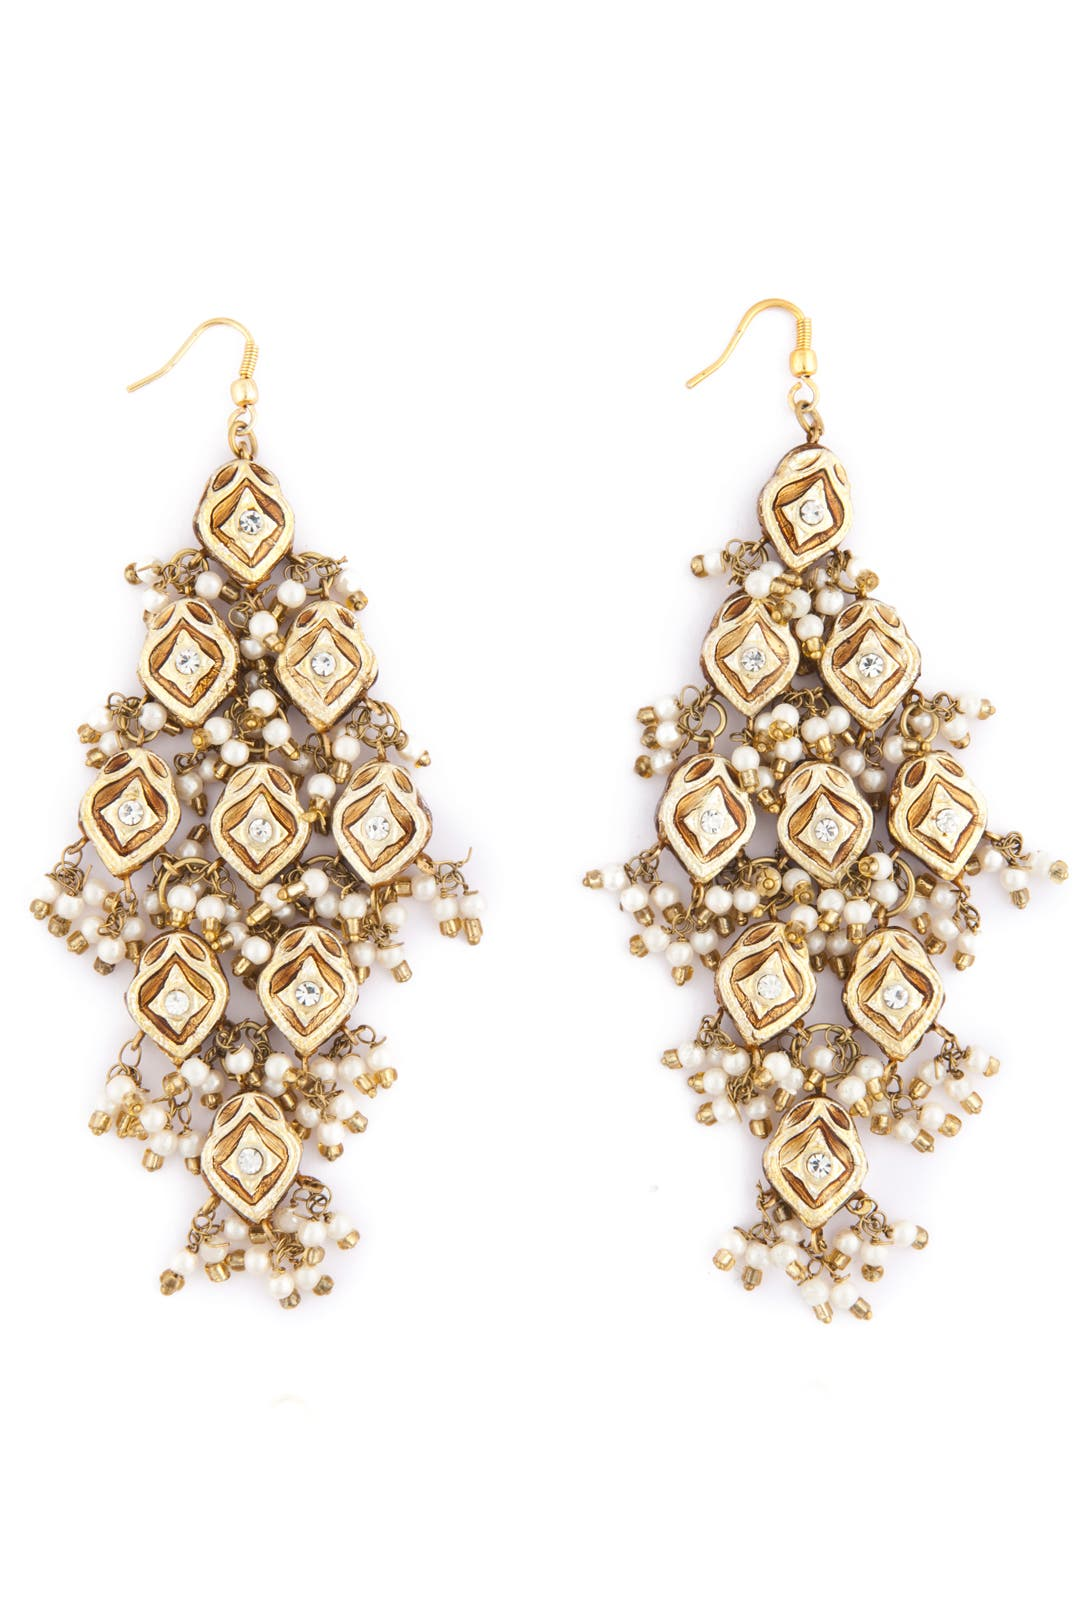 Gold Tiered Earrings by Chamak by Priya Kakkar